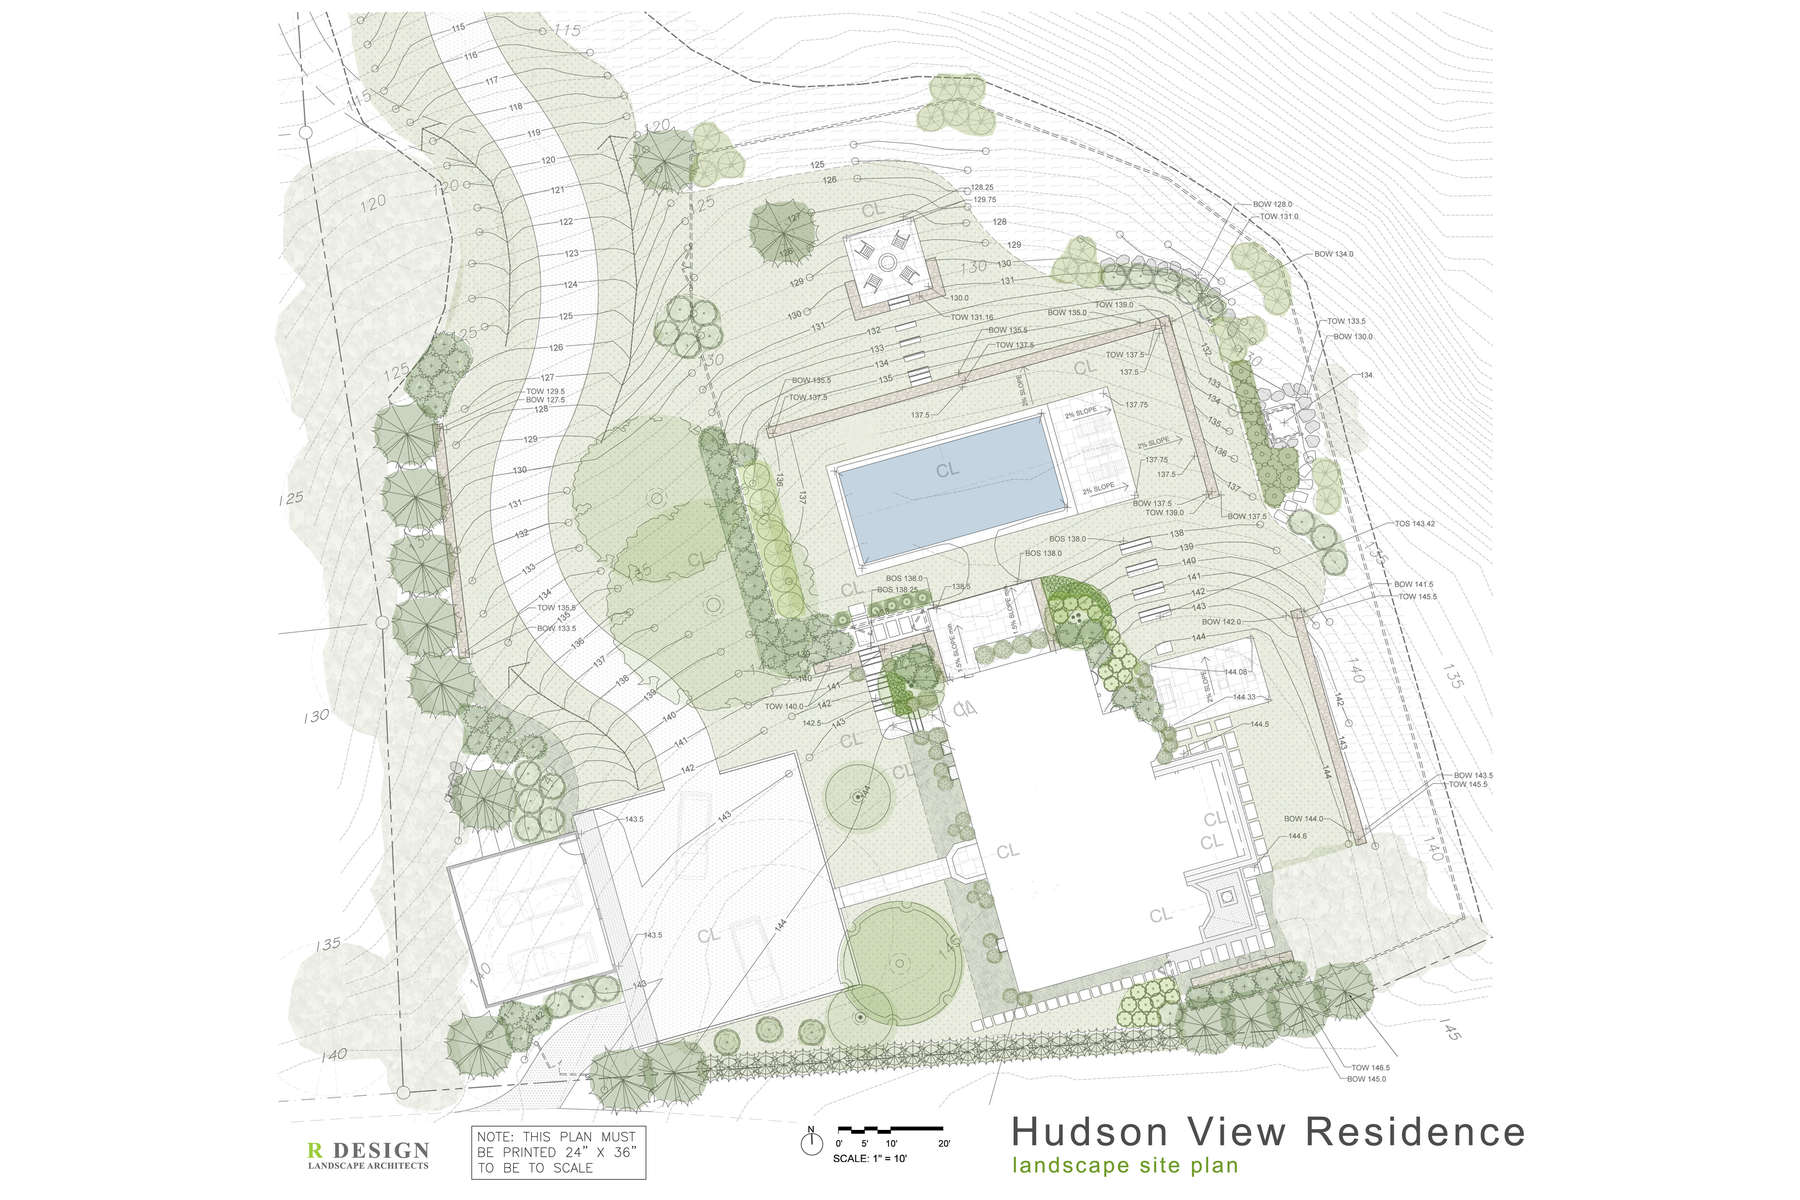 The new site plan showing a complete renovation of this Historic Hudson River property. This includes a new driveway, motor court, garage, pool area, walkways, garden rooms and dinning patios.